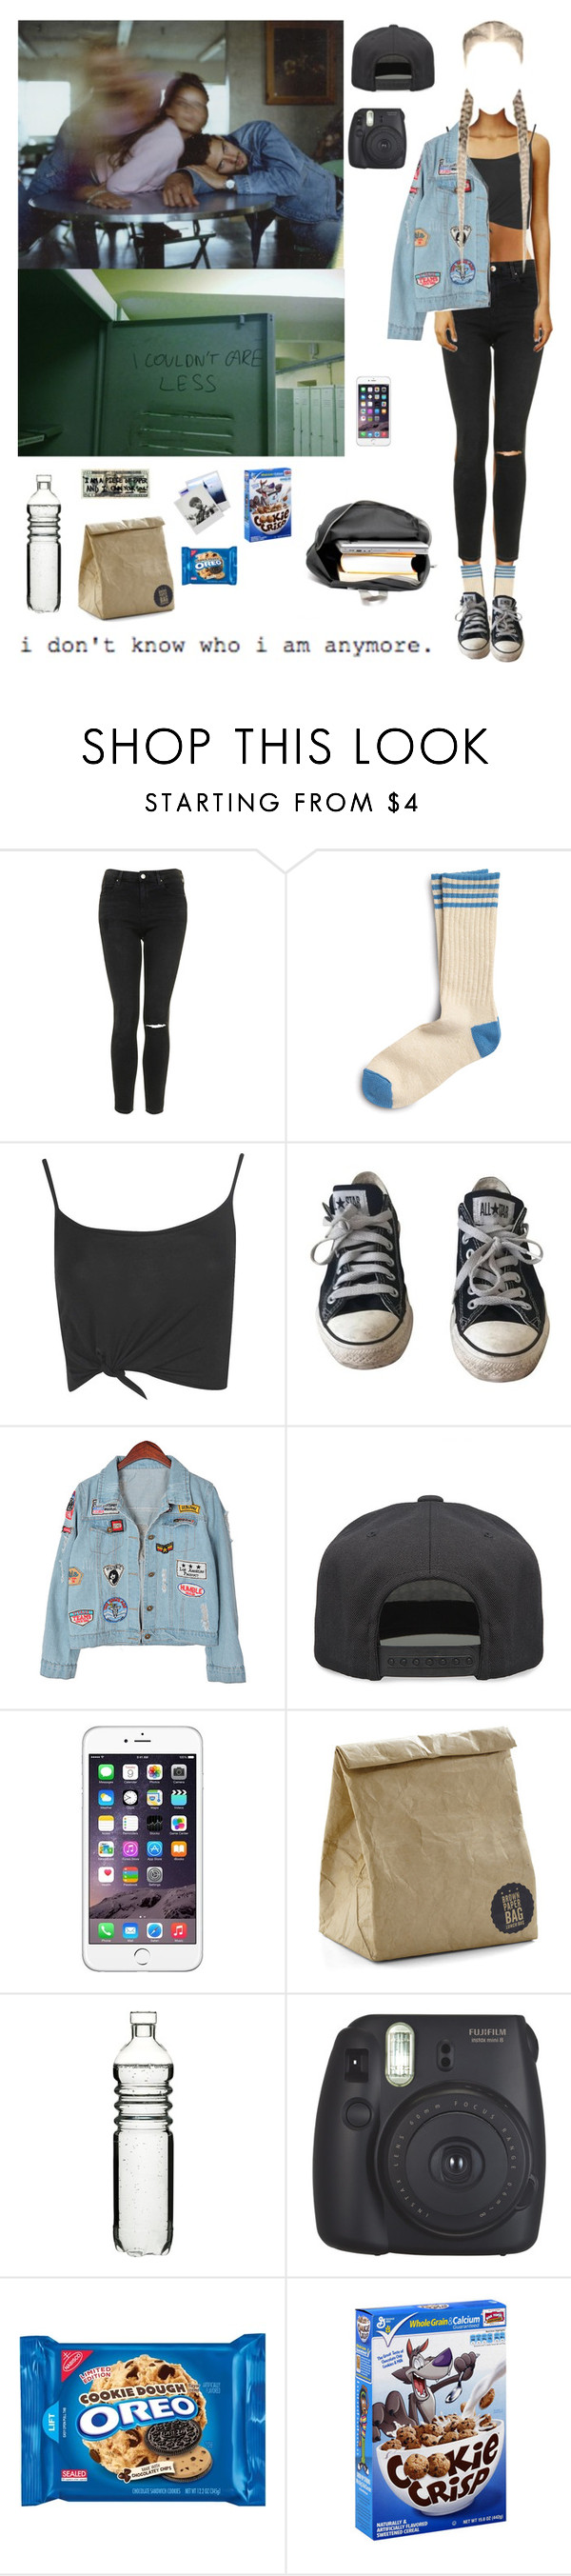 """School"" by djulia-tarasova ❤ liked on Polyvore featuring Topshop, Sperry, Boohoo, Converse, Chicnova Fashion, Alex and Chloe, Sagaform and Polaroid"